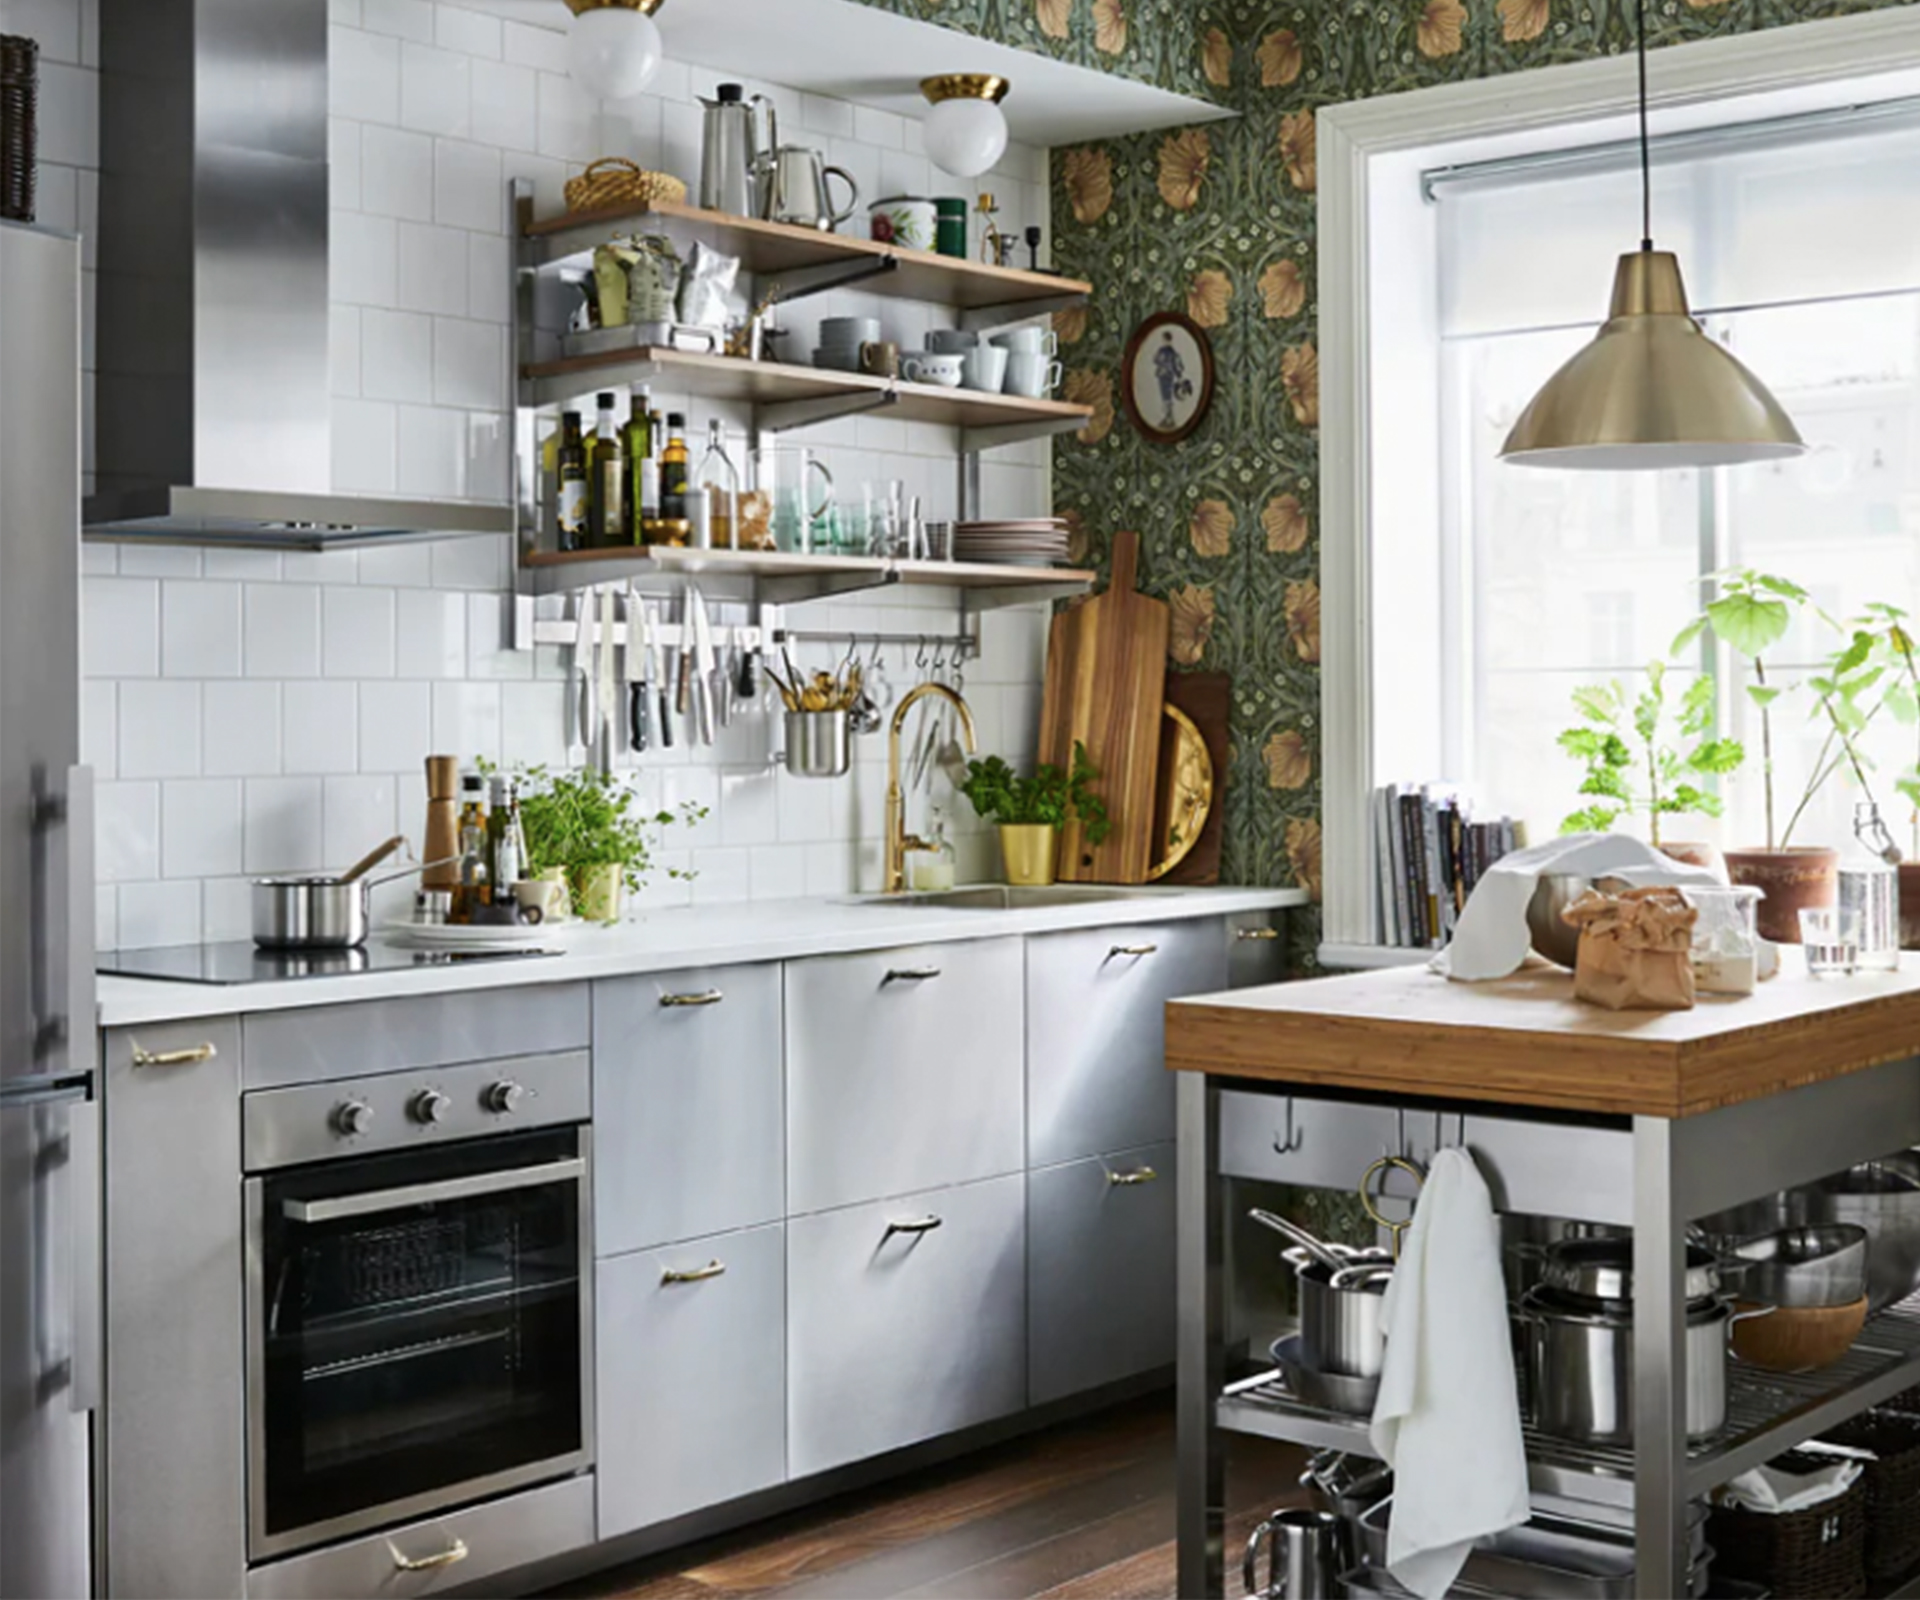 10 IKEA kitchen storage accessories you need | Homes To Love